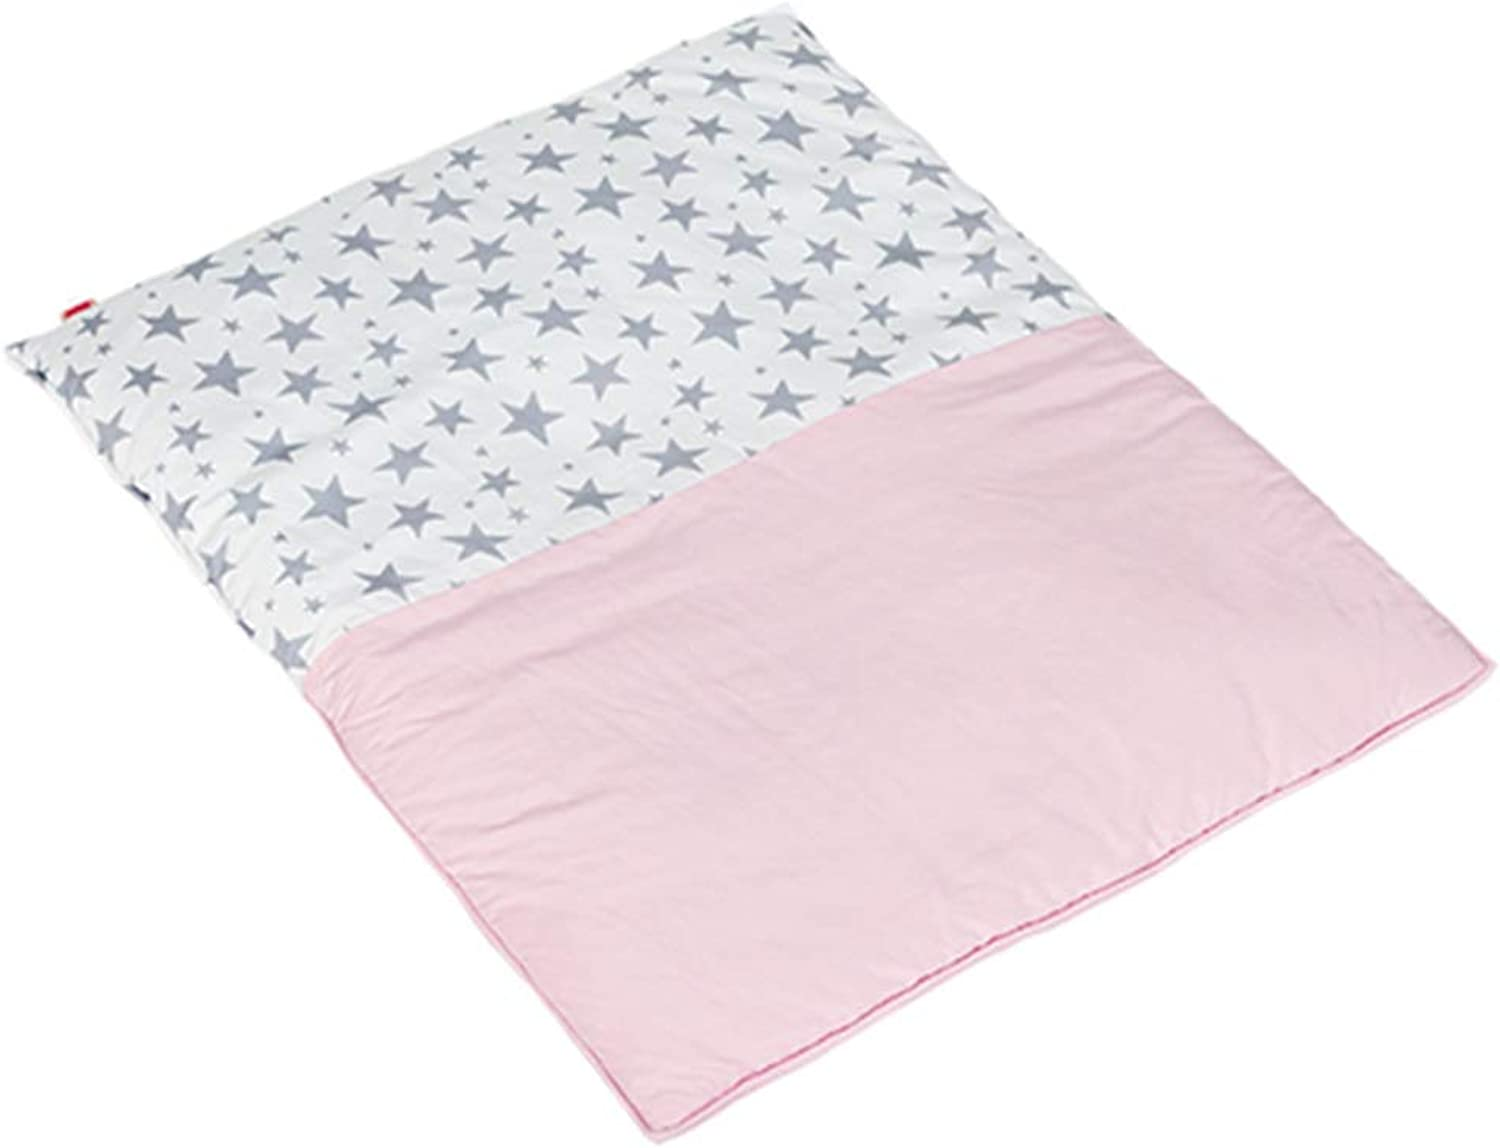 Blankets Super Soft Fluffy Premium Memory Cloth Cotton Pet Blanket Throw for Dog Puppy Cat (color   Pink, Size   S (63×43CM))